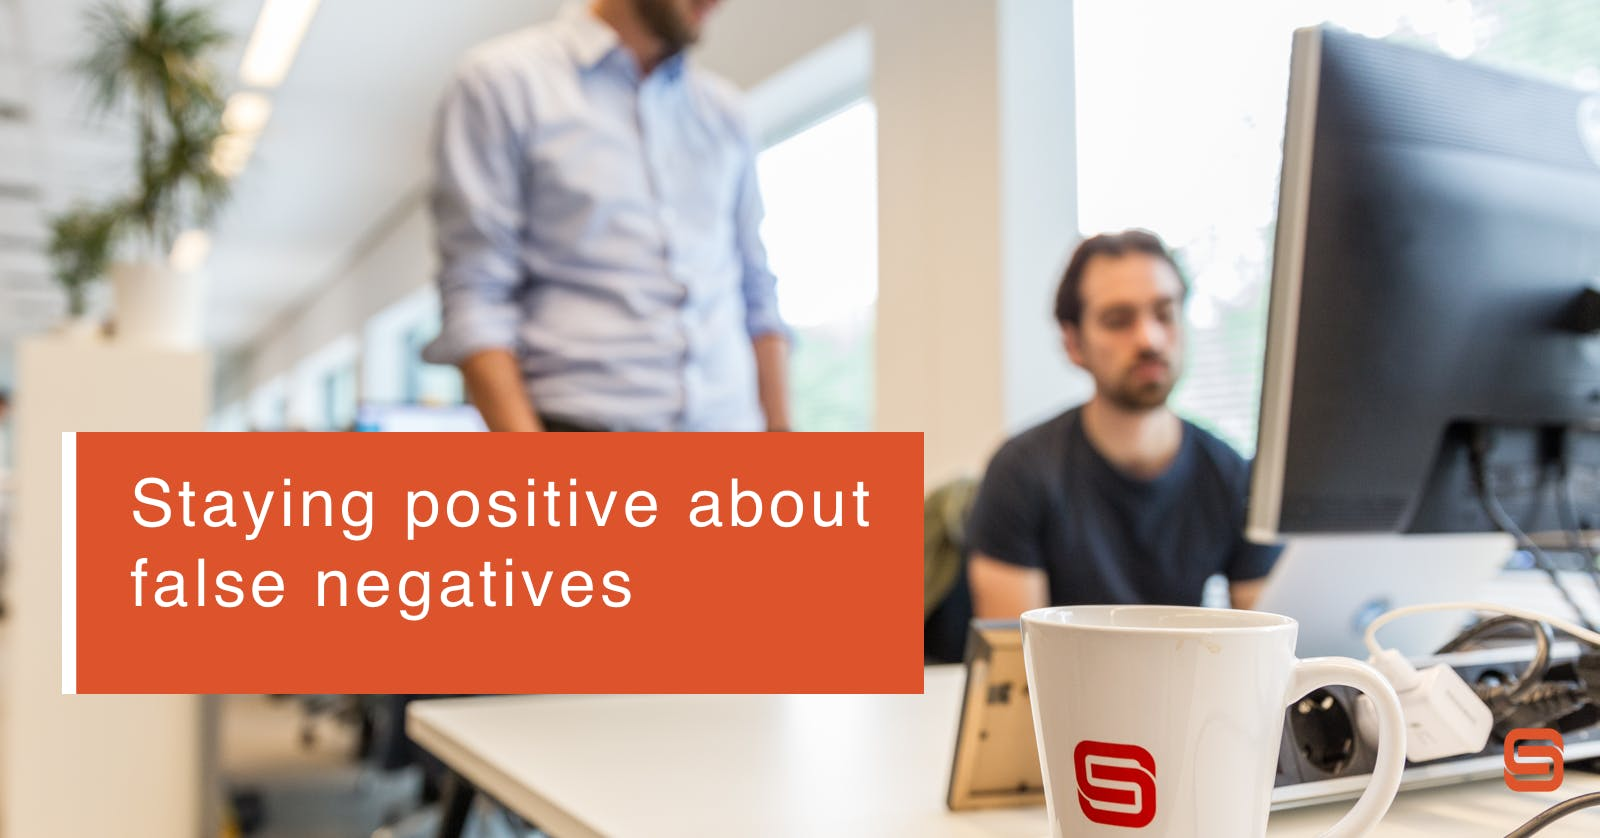 Staying positive about false negatives